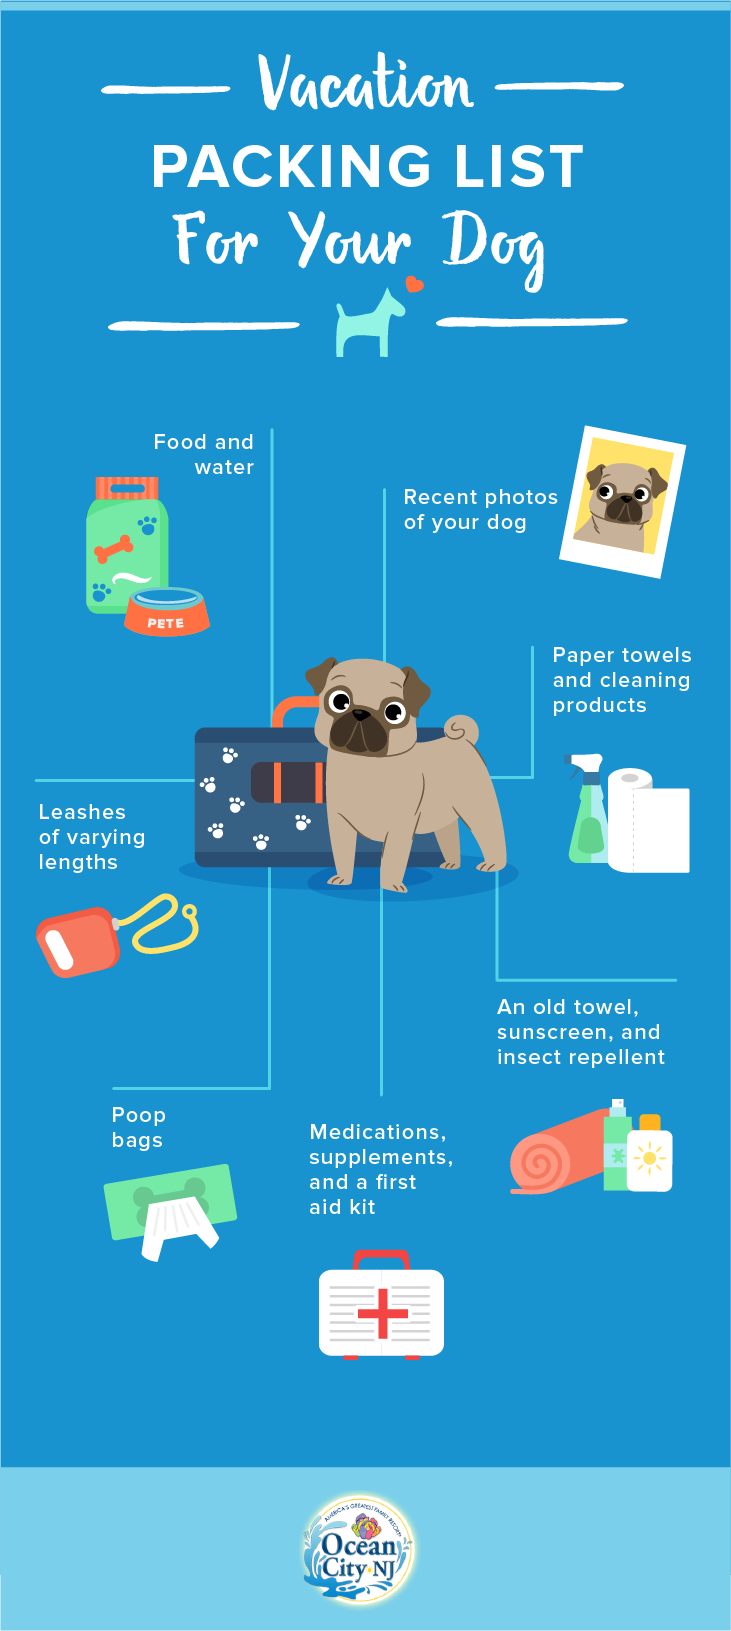 Vacation-Packing-List-For-Your-Dog